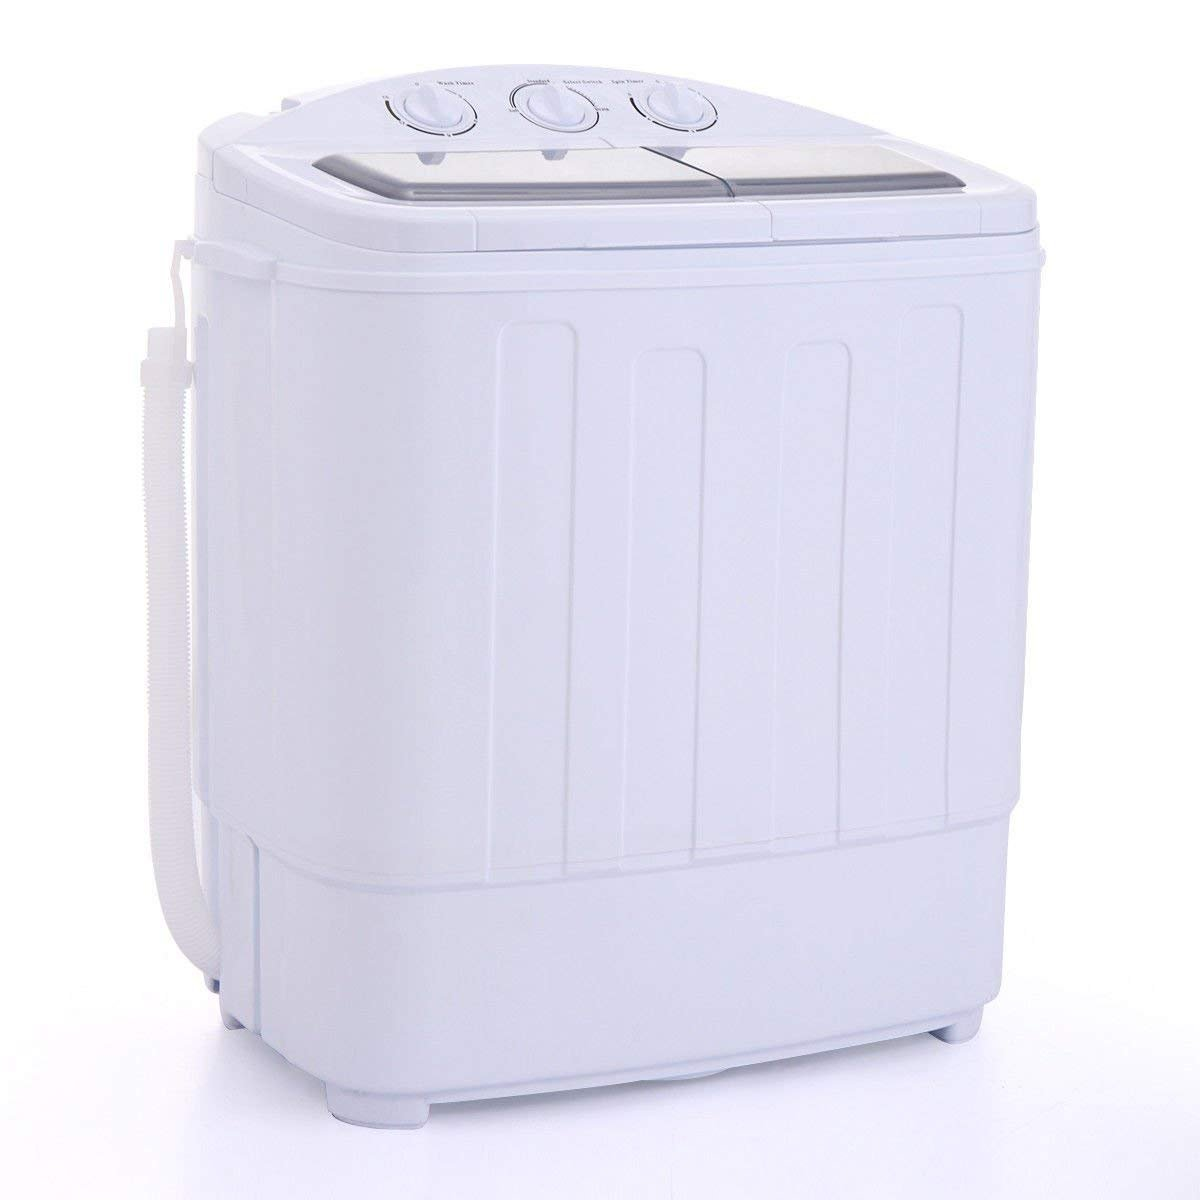 JAXPETY Portable Washing Machine Compact Wash Spin Dry Cycle Laundry